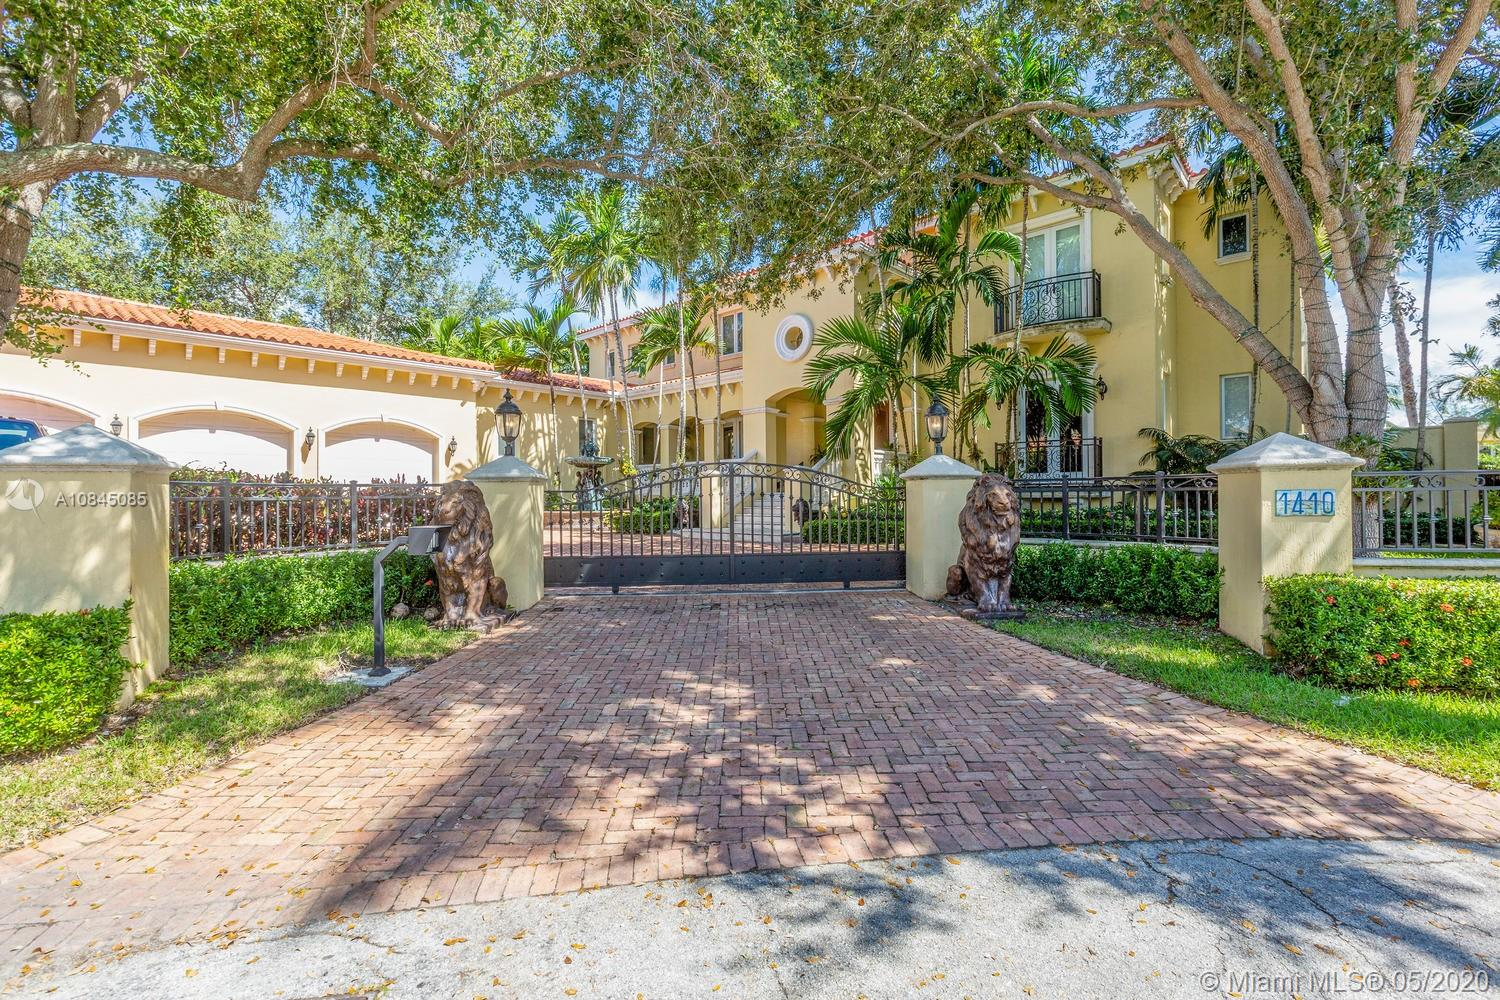 Magnificent 6BR 6.5BA residence on a Cul-De-Sac in exclusive gated community of Gables By The Sea. Grand foyer has grand chandelier & stately stairs case. State of the art kitchen + Breakfast Rm. Wet Bar with wine cooler & ice maker. Also includes master suite, library, family room & maids qtrs. Wired for security fire, alarm, &includes phone system. Speakers, central Vacuum system, lush landscape with pool & Sundeck. 254' concrete Sea Wall. No Ocean Access, pool, gazebo, laundry room, 3 car garage. Impact windows and doors. Impeccable property